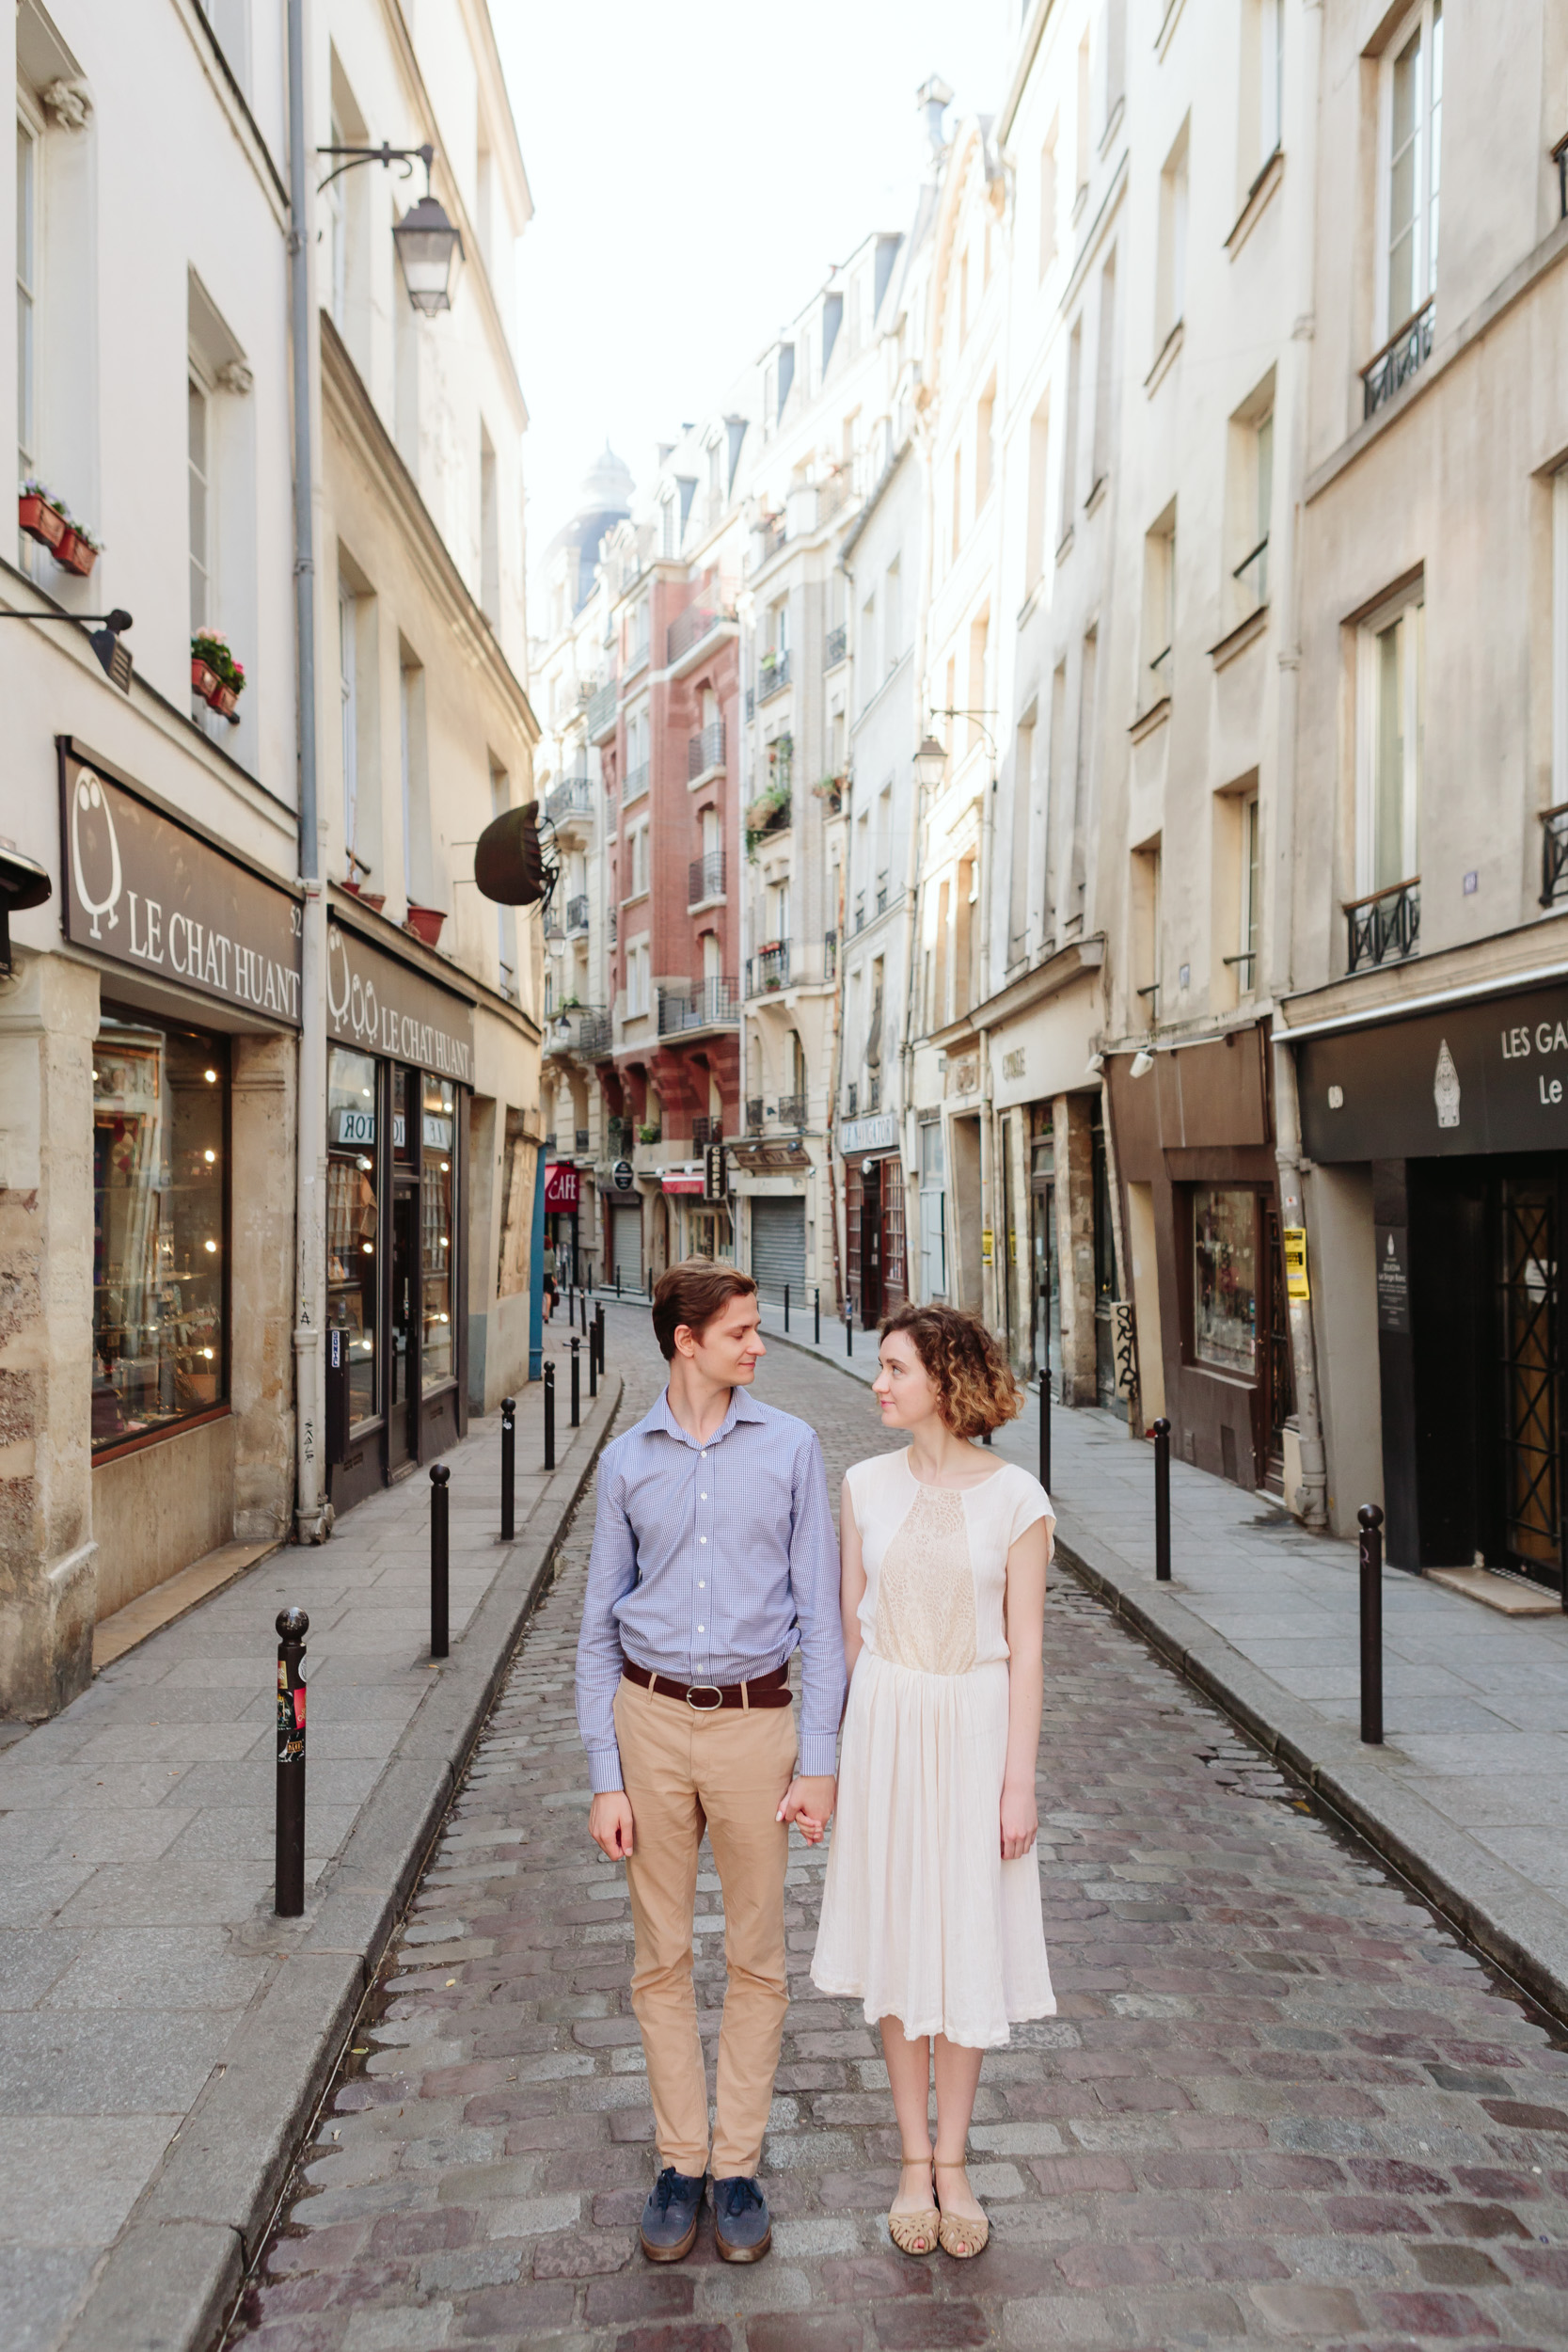 Couple in love standing the streets of Saint Germain in Paris captured by Paris Photographer Federico Guendel IheartParisFr